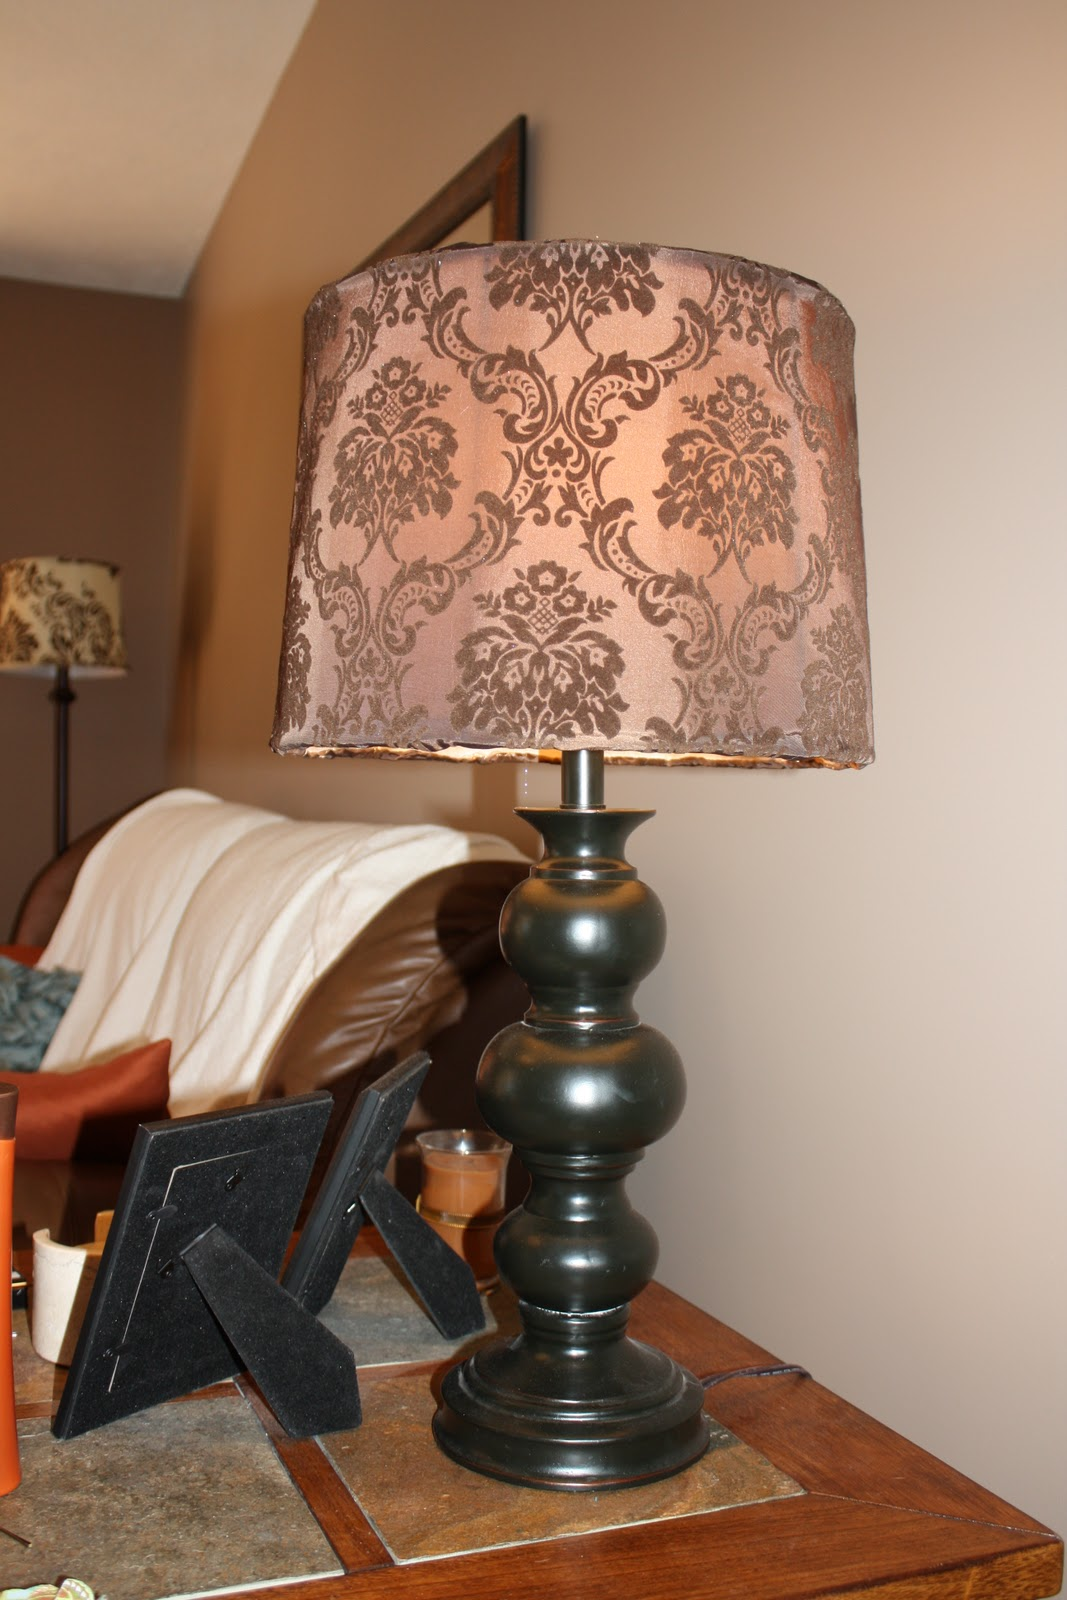 Parr point how to redo a lamp shade for Redo lamp shades